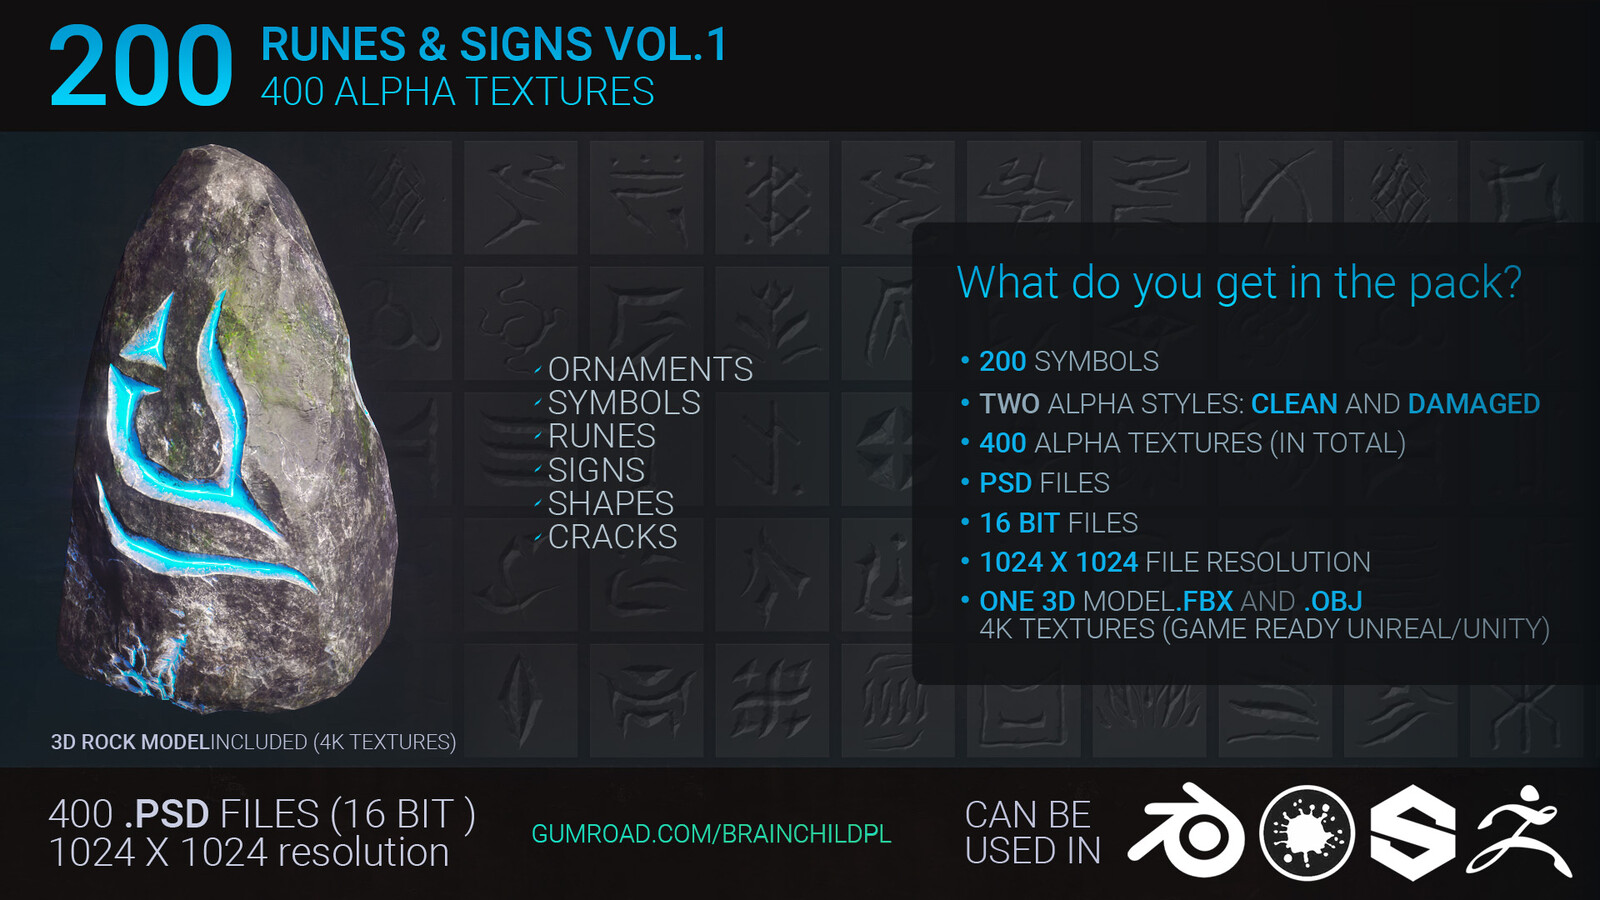 200 Runes (400 Alpha Textures)| Symbols | Ornaments | Signs | Shapes | Alpha Texture Zbrush Blender | Zbrush & Blender Brushes | Zbrush Alphas | Zbrush Brushes | Zbrush Alpha Textures | Damage Alpha Textures